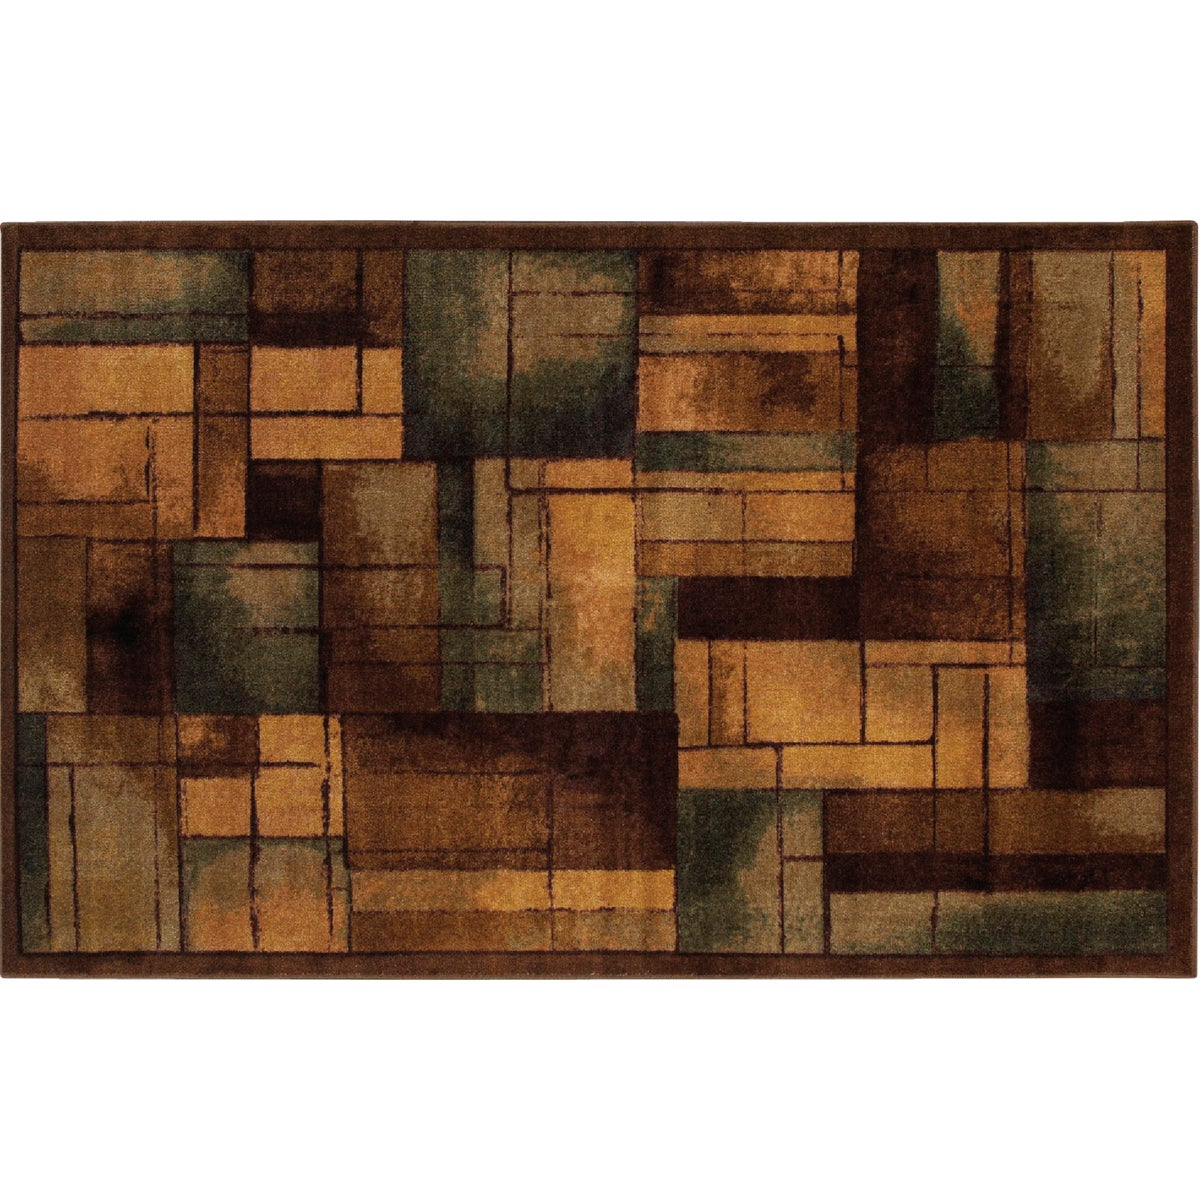 20X34 ROBY PRINT RUG - 10533-439-20034 by Mohawk Home Products